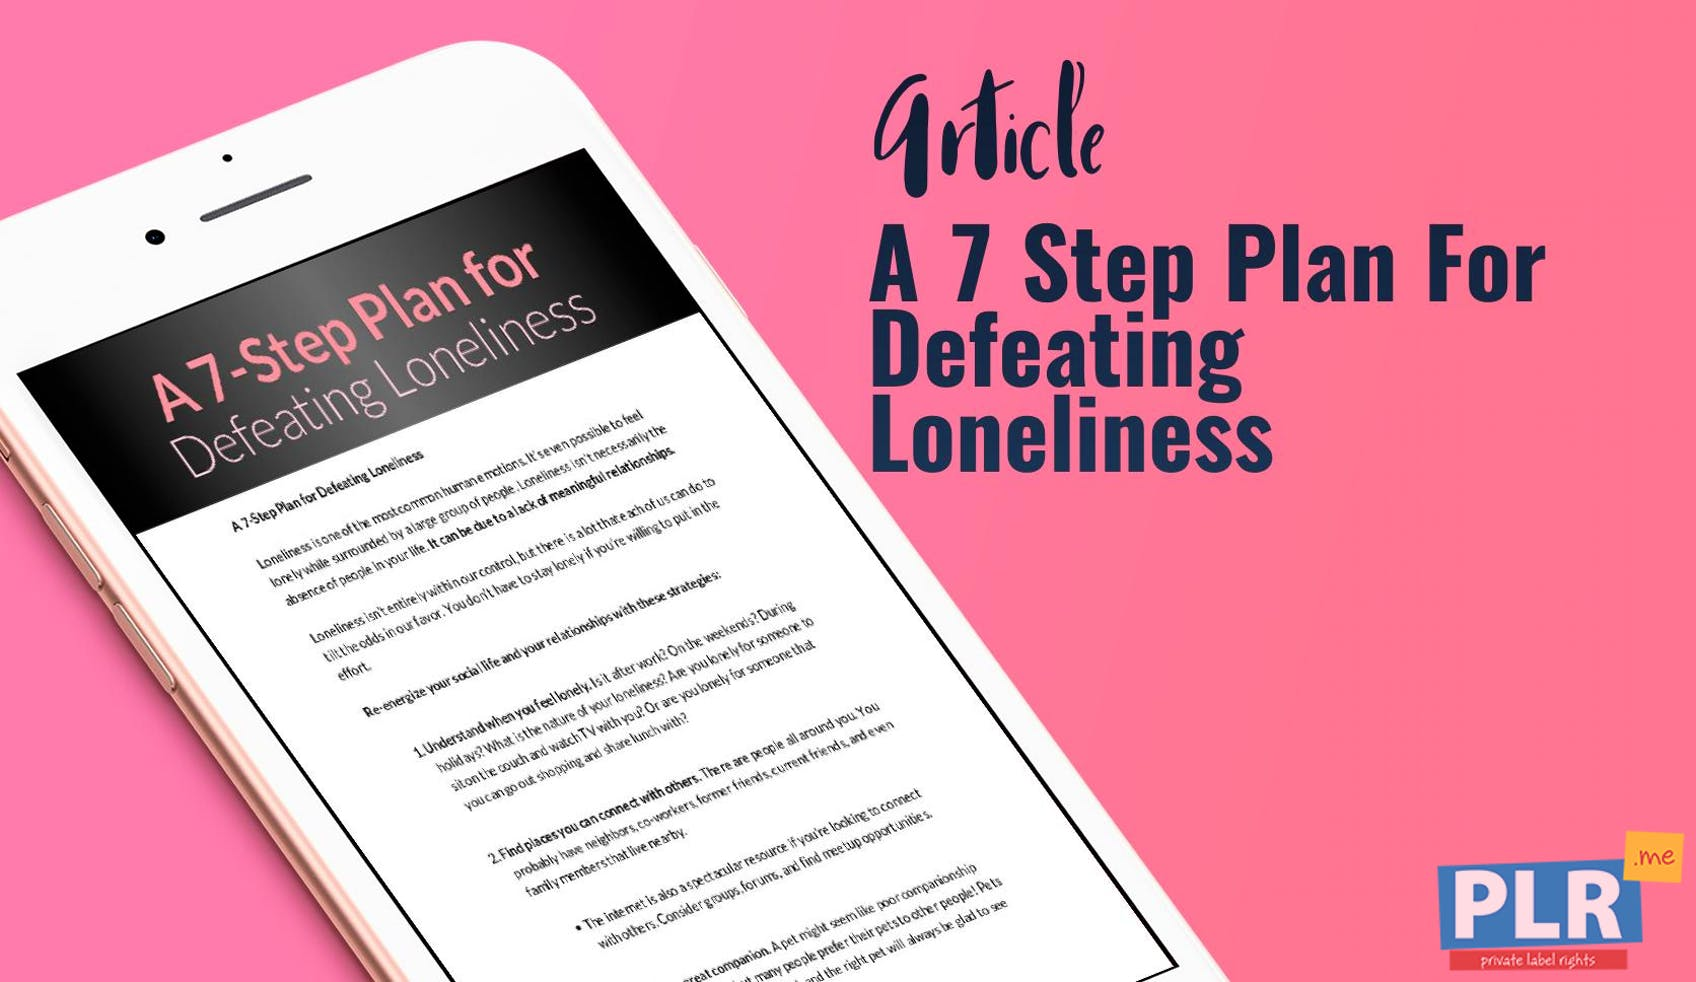 A 7 Step Plan For Defeating Loneliness